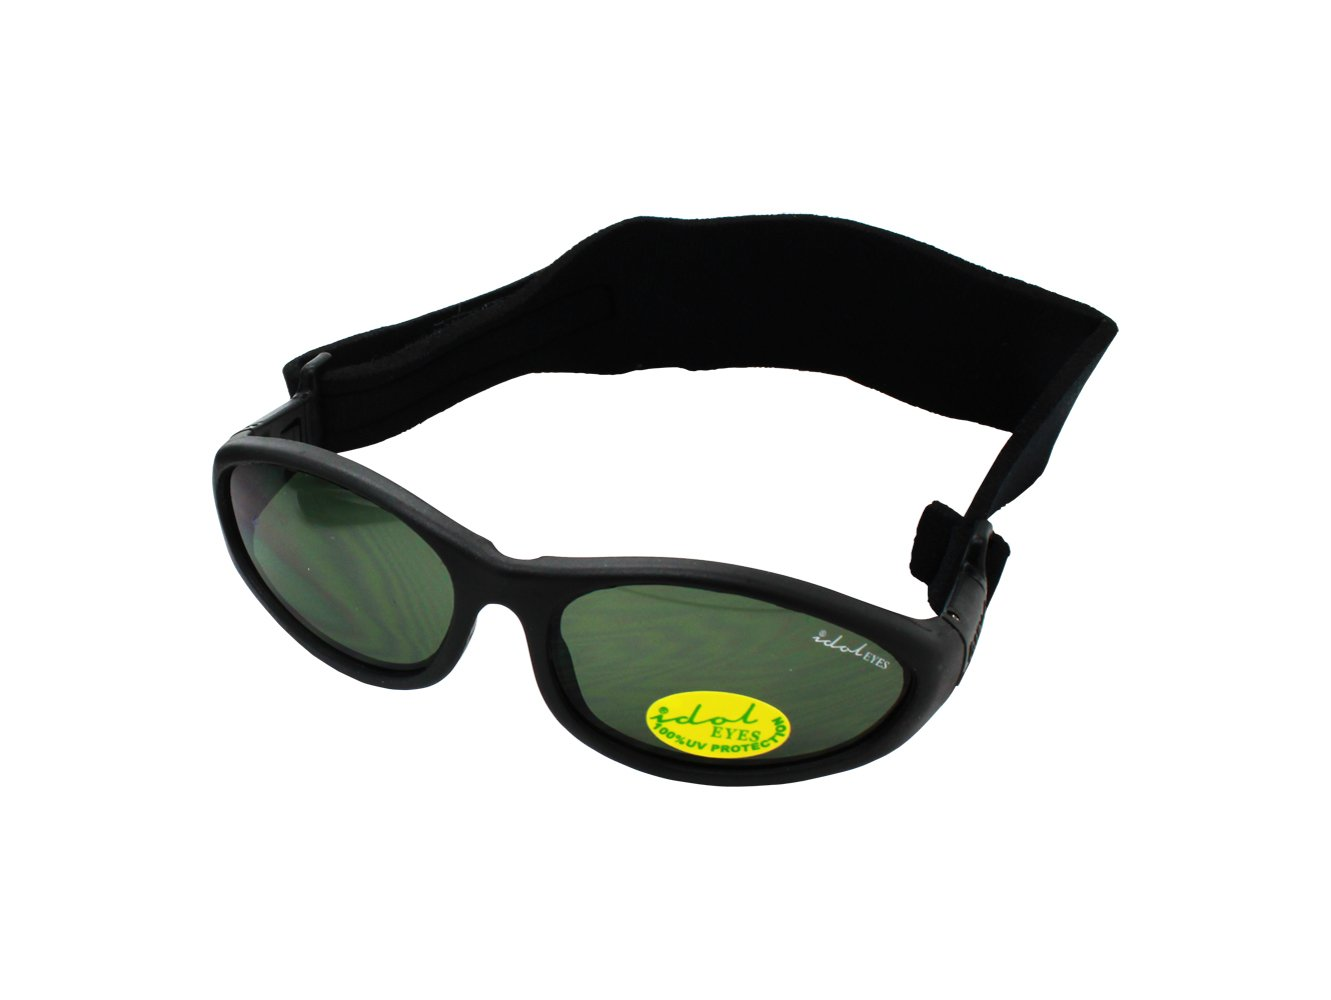 89b9f0136041 Baby Wrapz Sunglasses (Black)  Amazon.co.uk  Baby